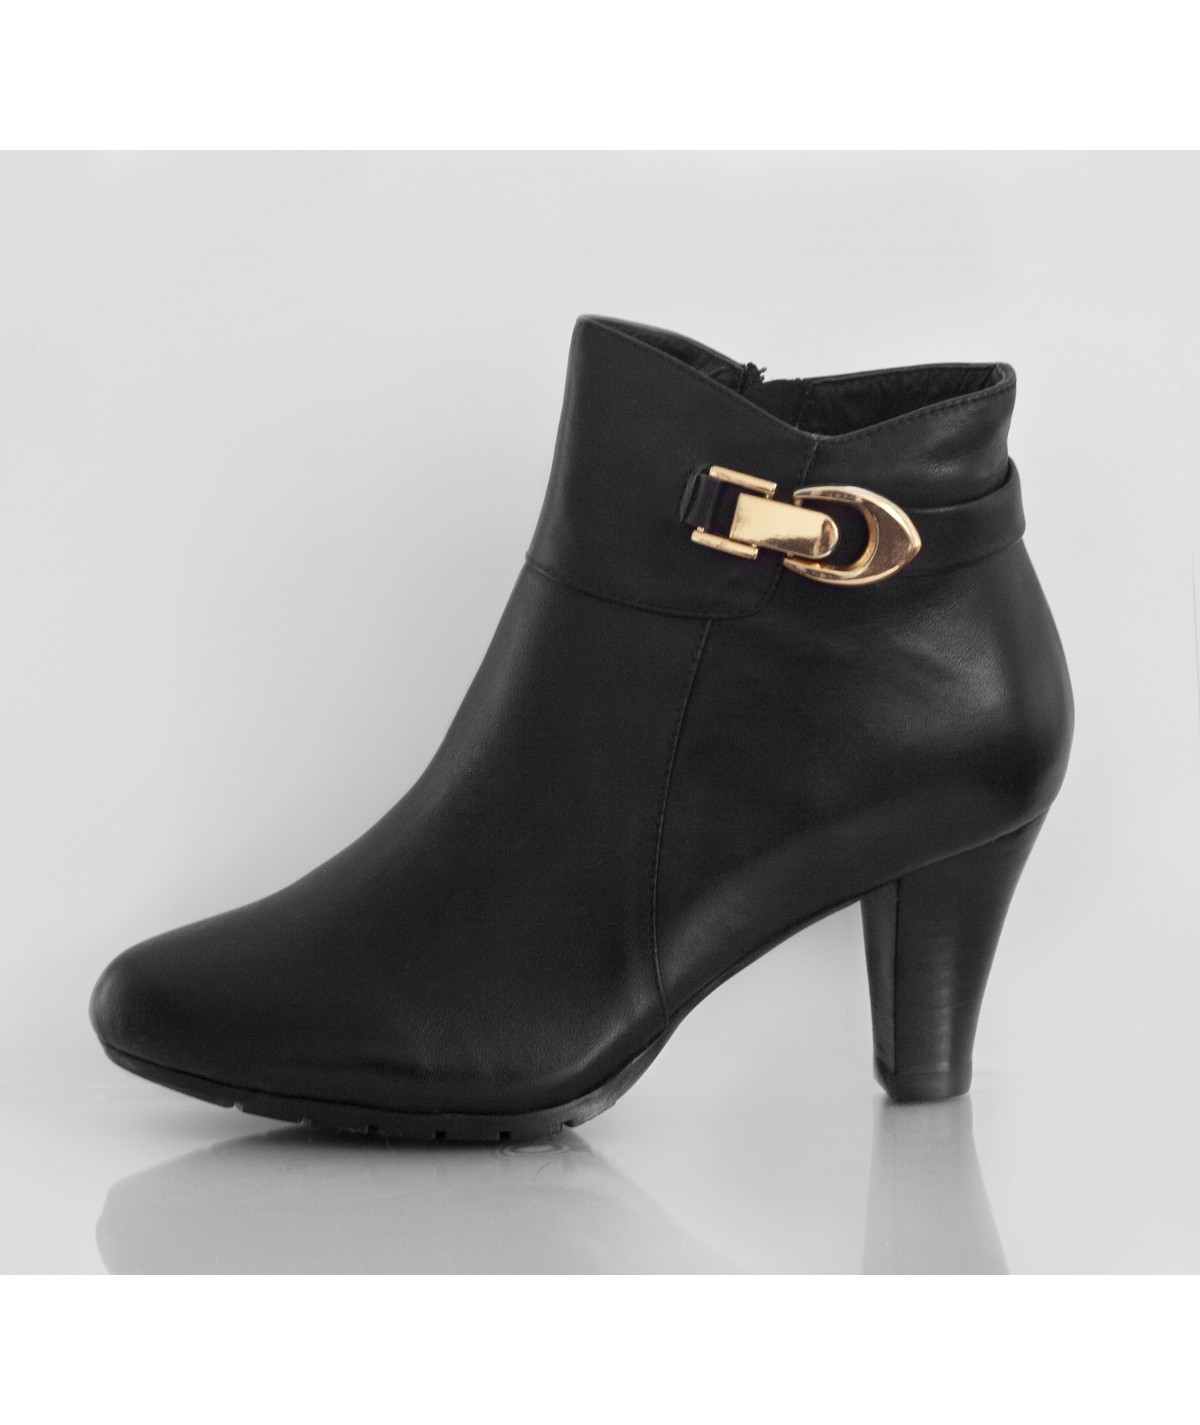 Sasha Black Black pointed heel ankle boots